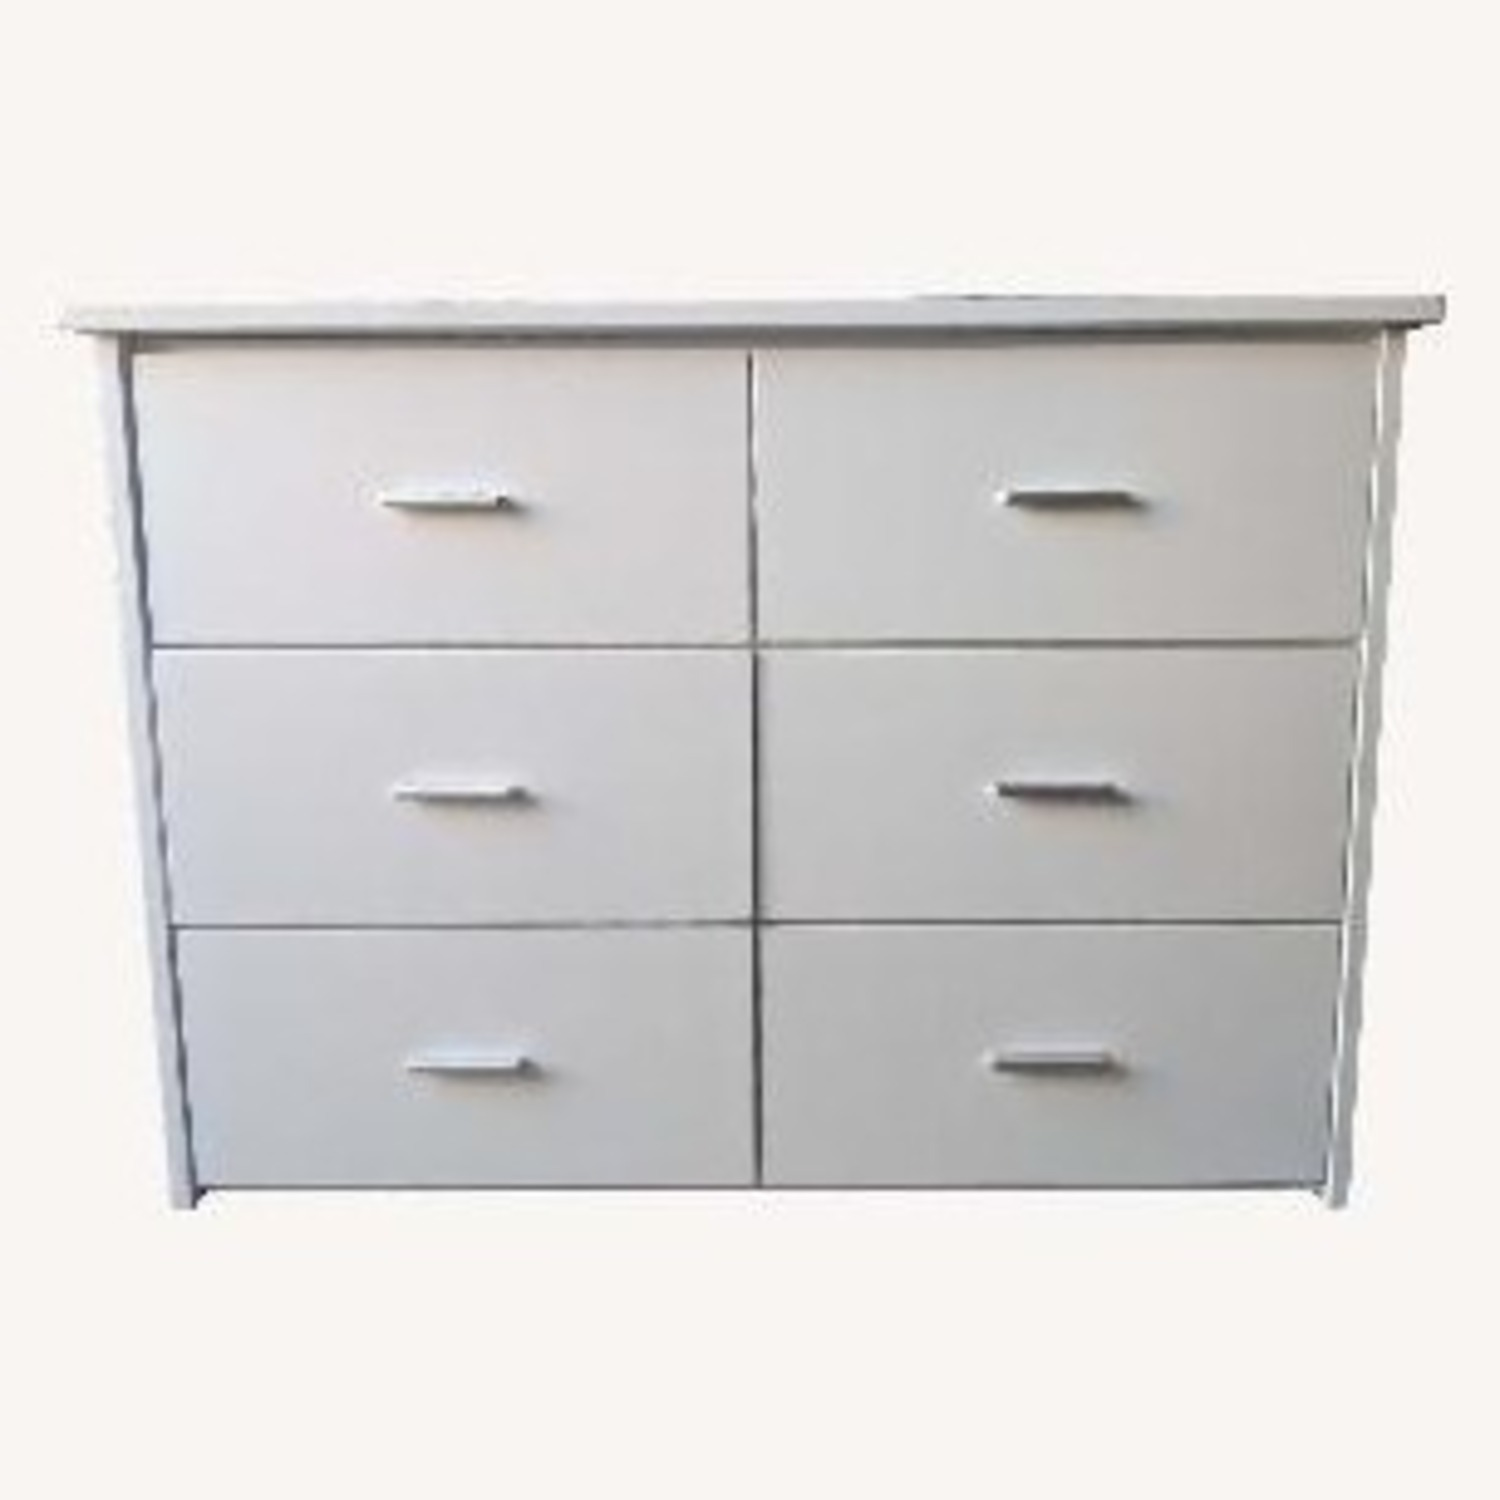 6-Drawer Storage Unit in White Finish - image-0